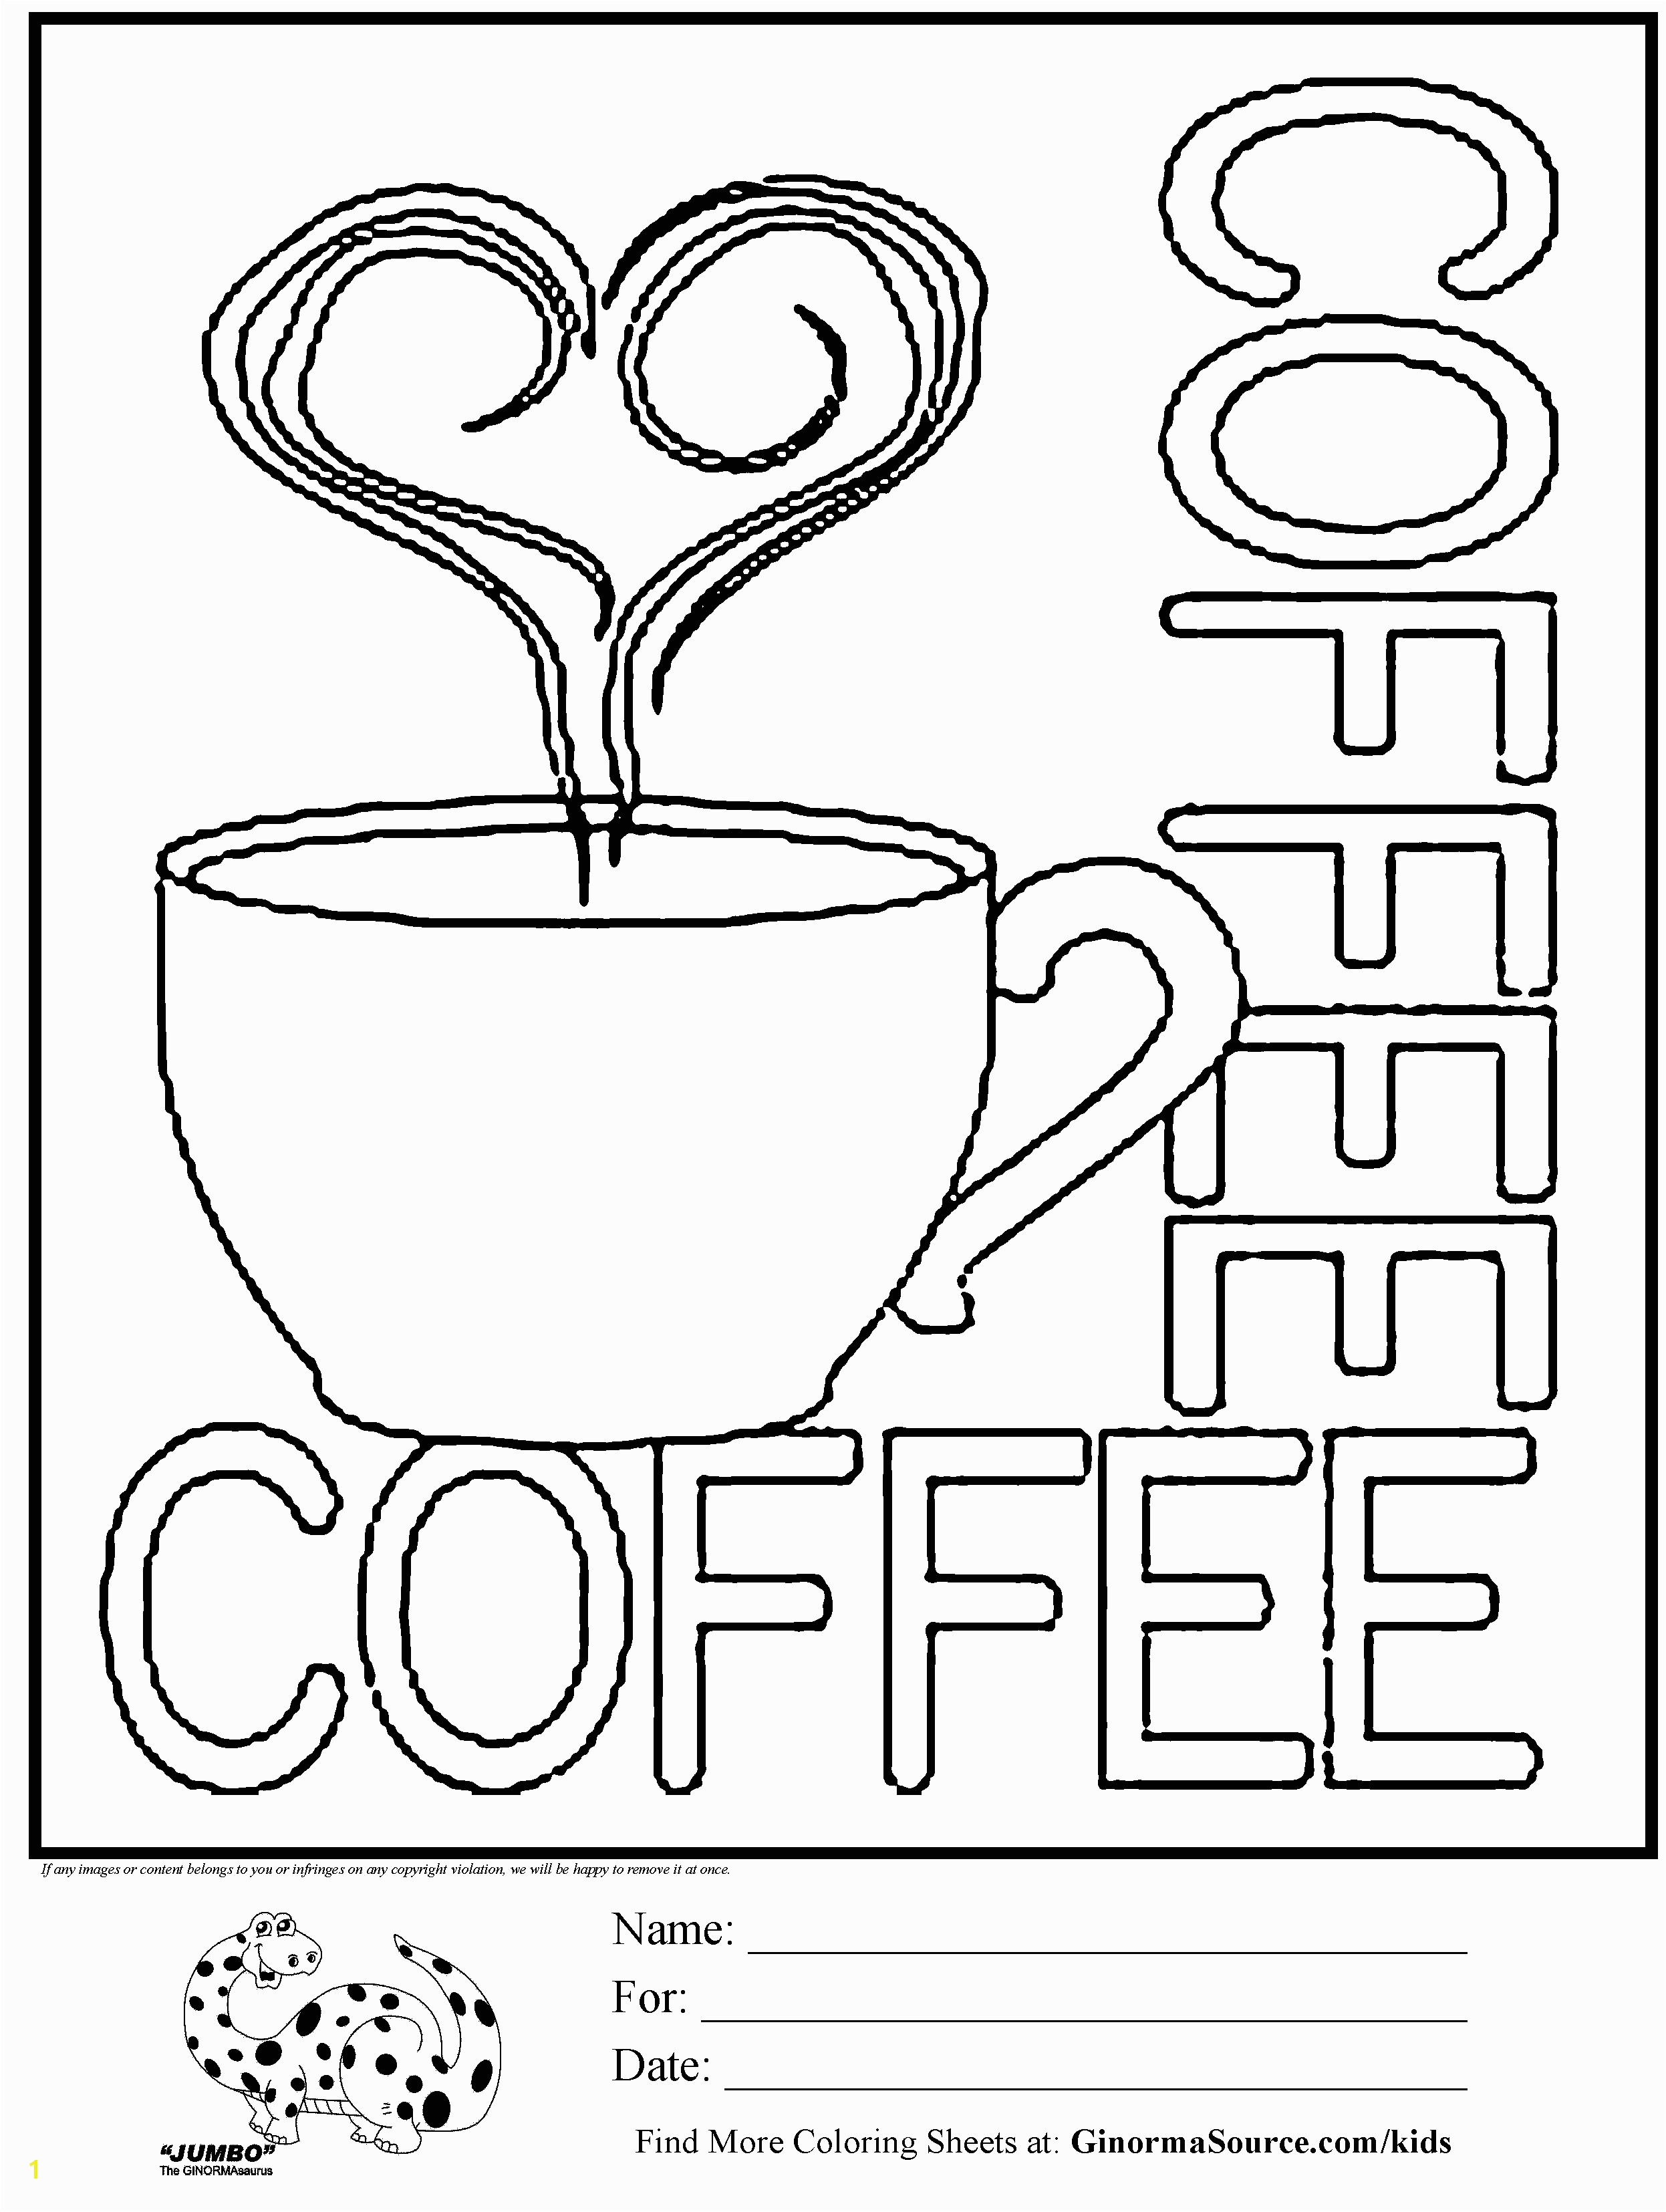 Coffee Mug Coloring Page Free Coloring Page Coffee Cup Kids Activities Pinterest